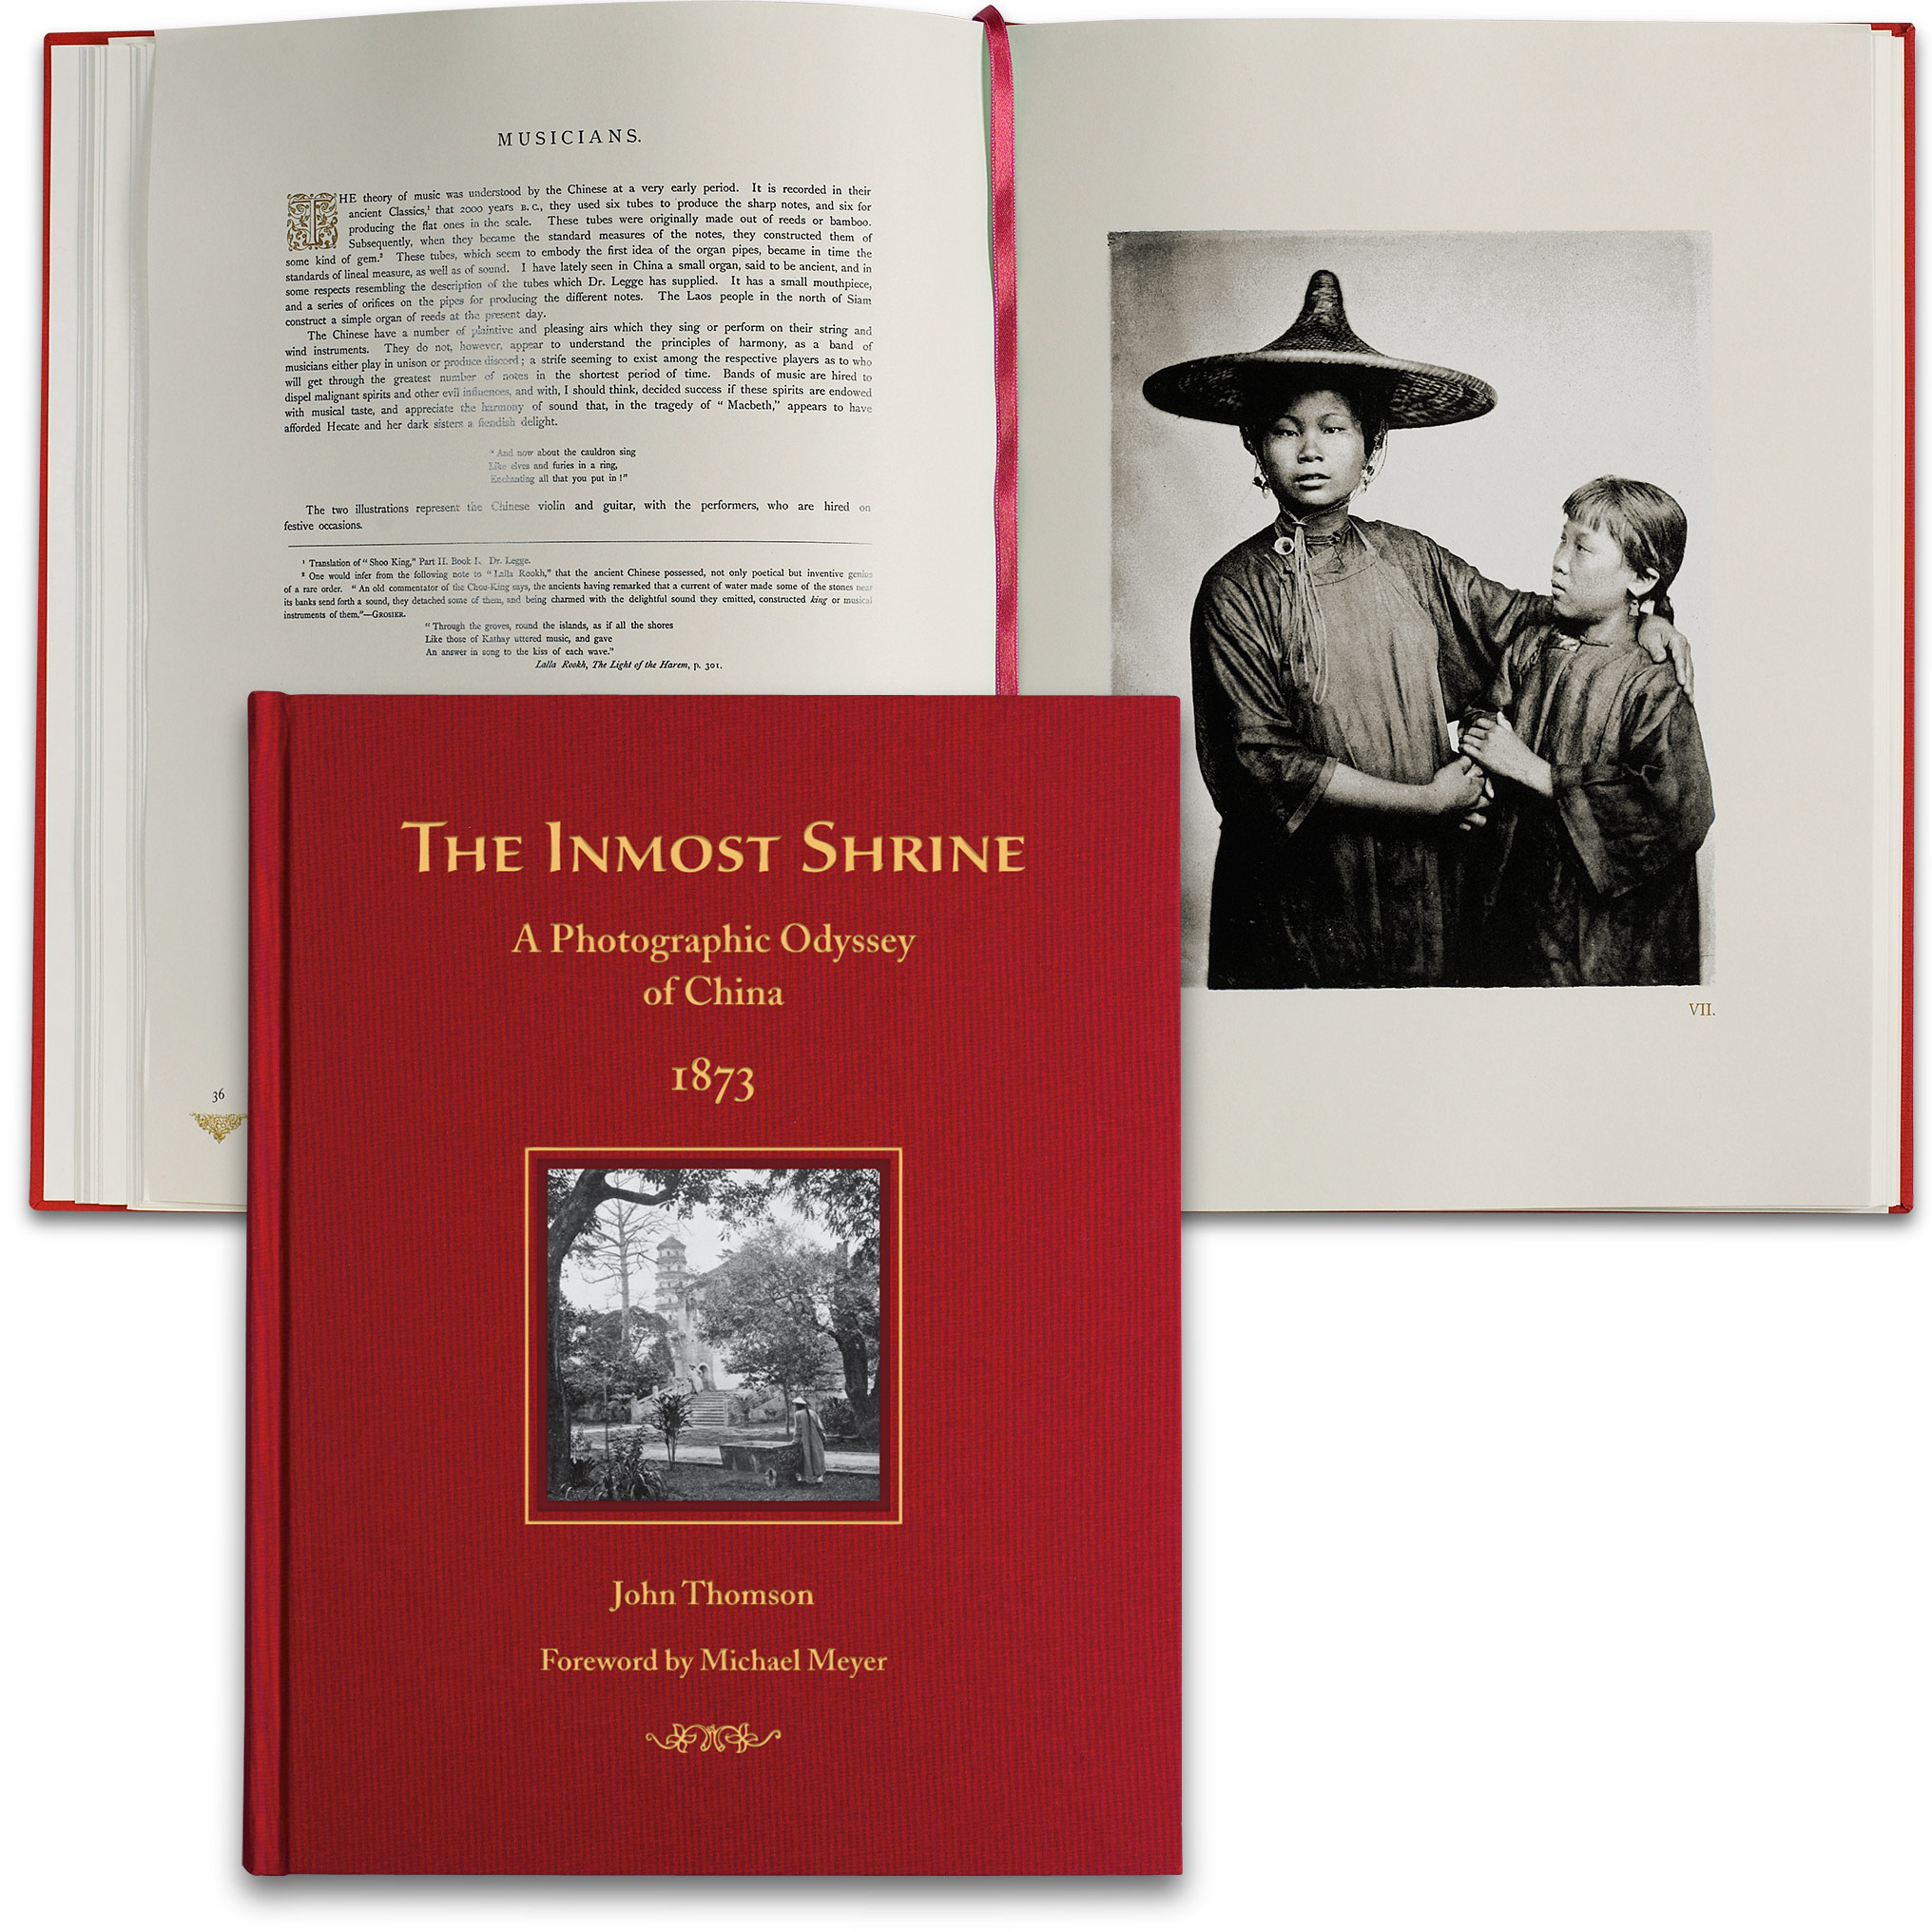 The Inmost Shrine: A Photographic Odyssey of China, 1873